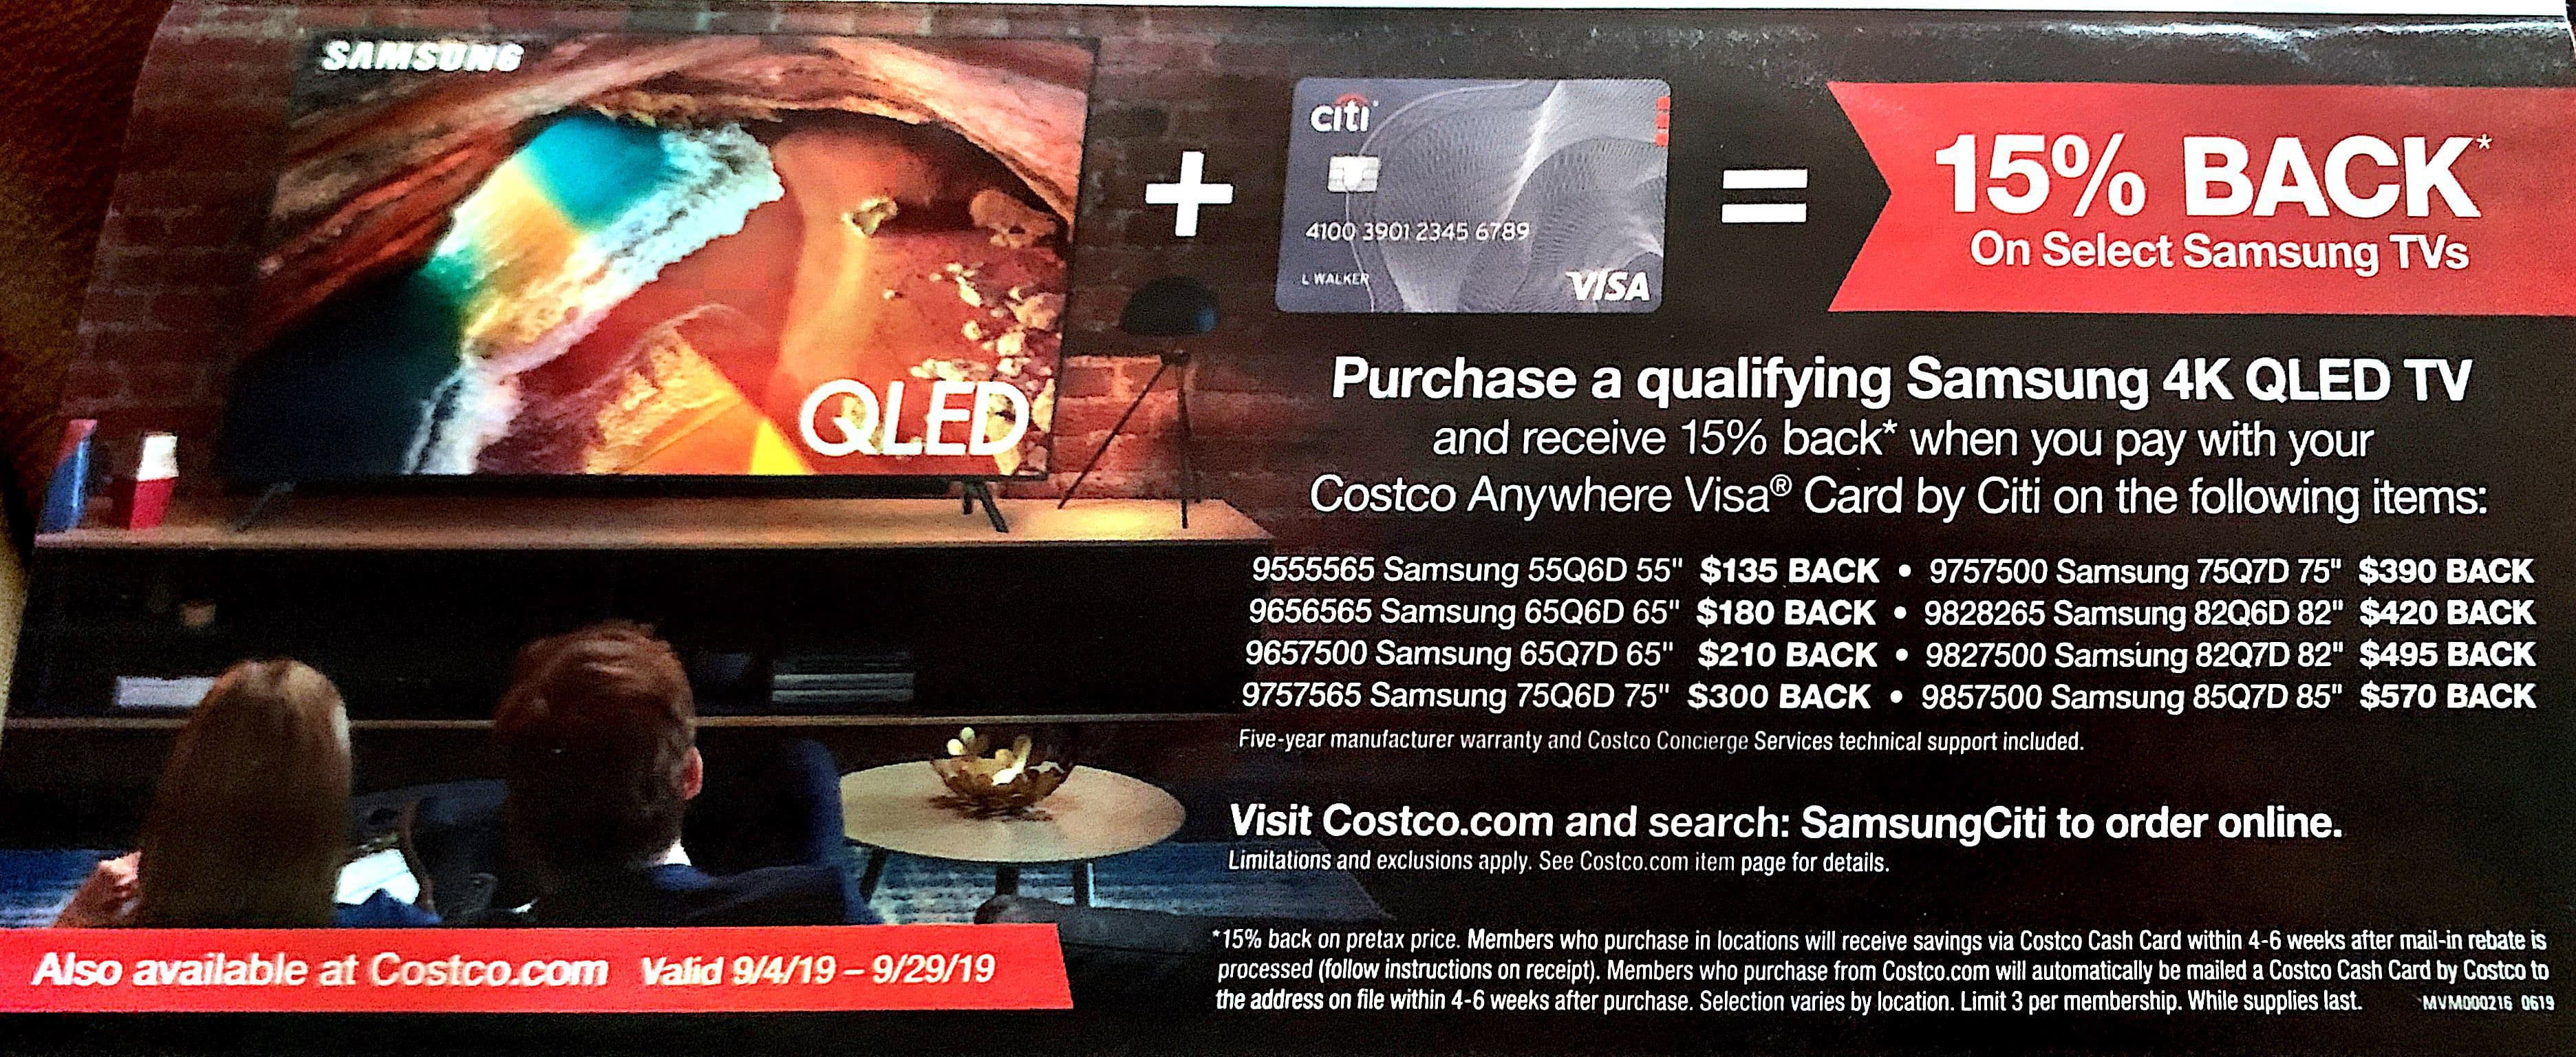 Costco members:  15% back on select Samsung TV's when using Costco anywhere Visa card by CITI valid 9/4 to 9/29